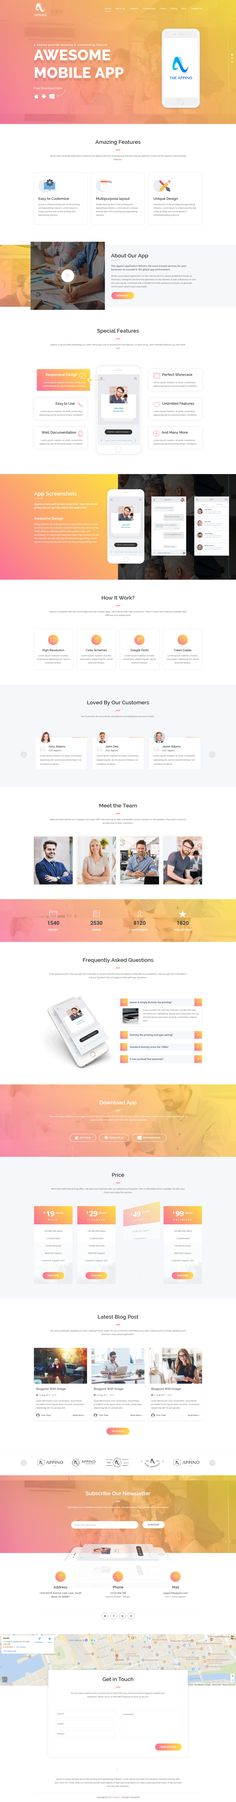 A Perfect Mobile App Landing Page